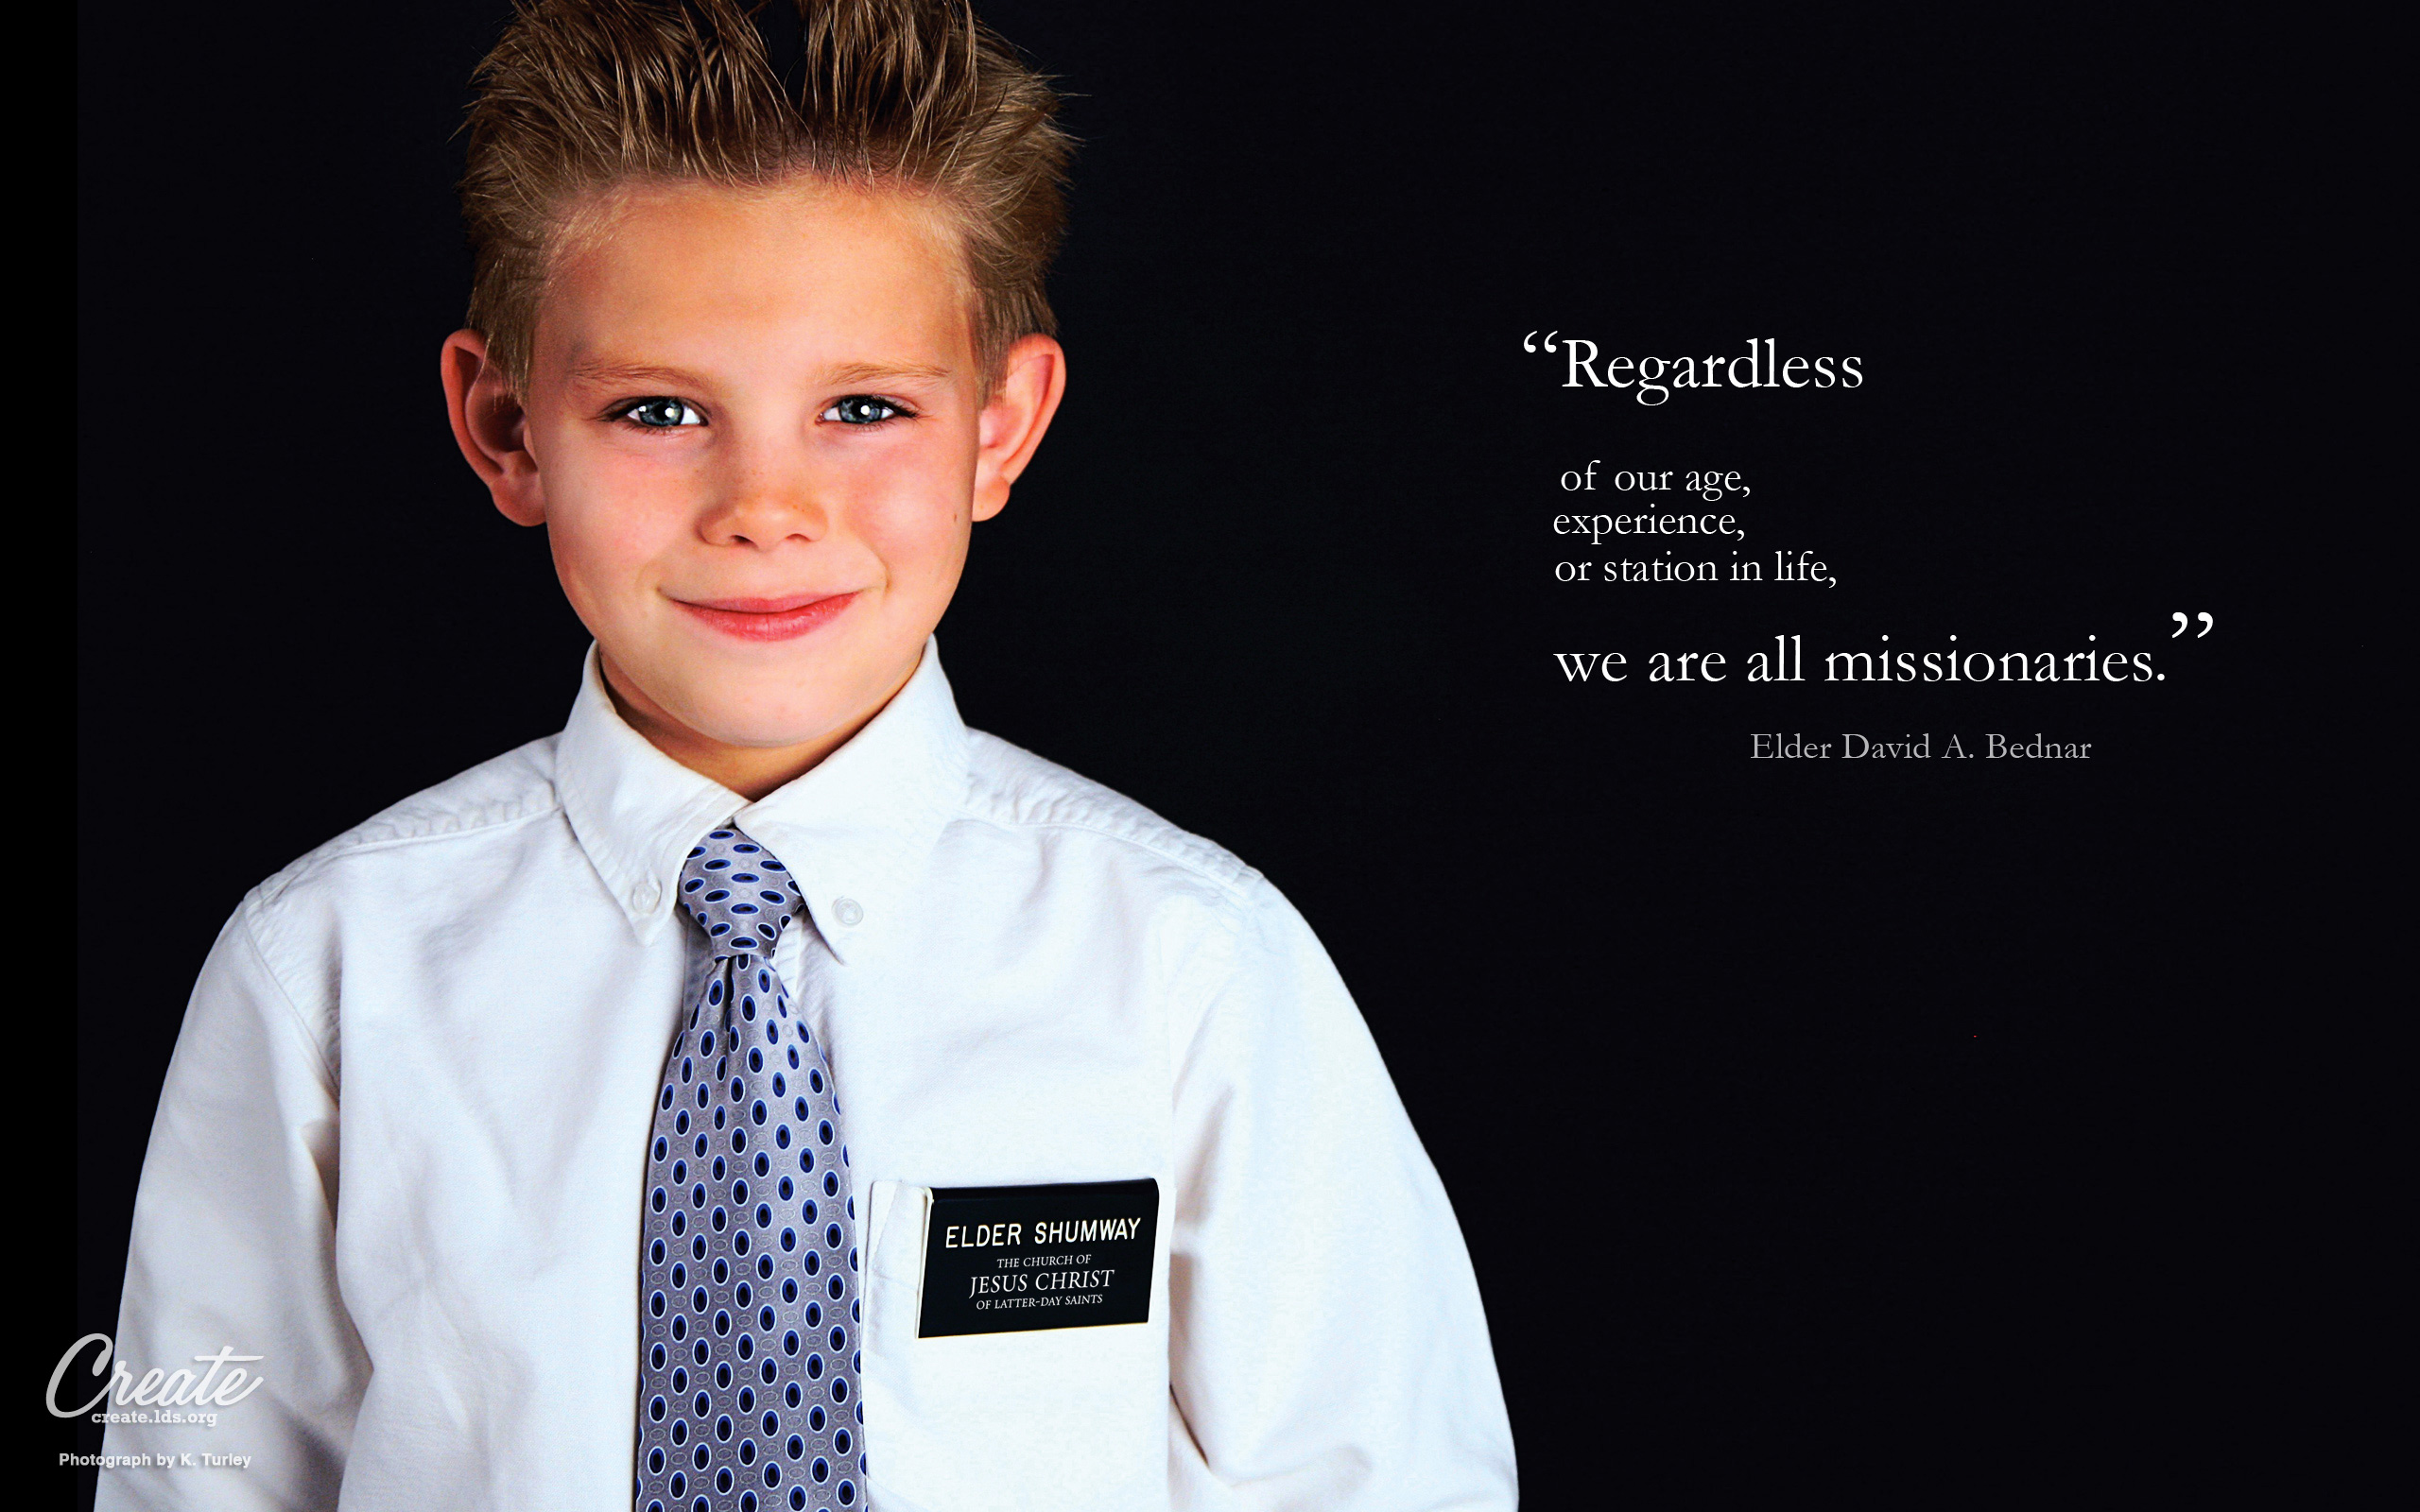 Lds missionary quotes or thoughts quotesgram - Inspirational Quotes For Member Missionaries Quotesgram We Are One